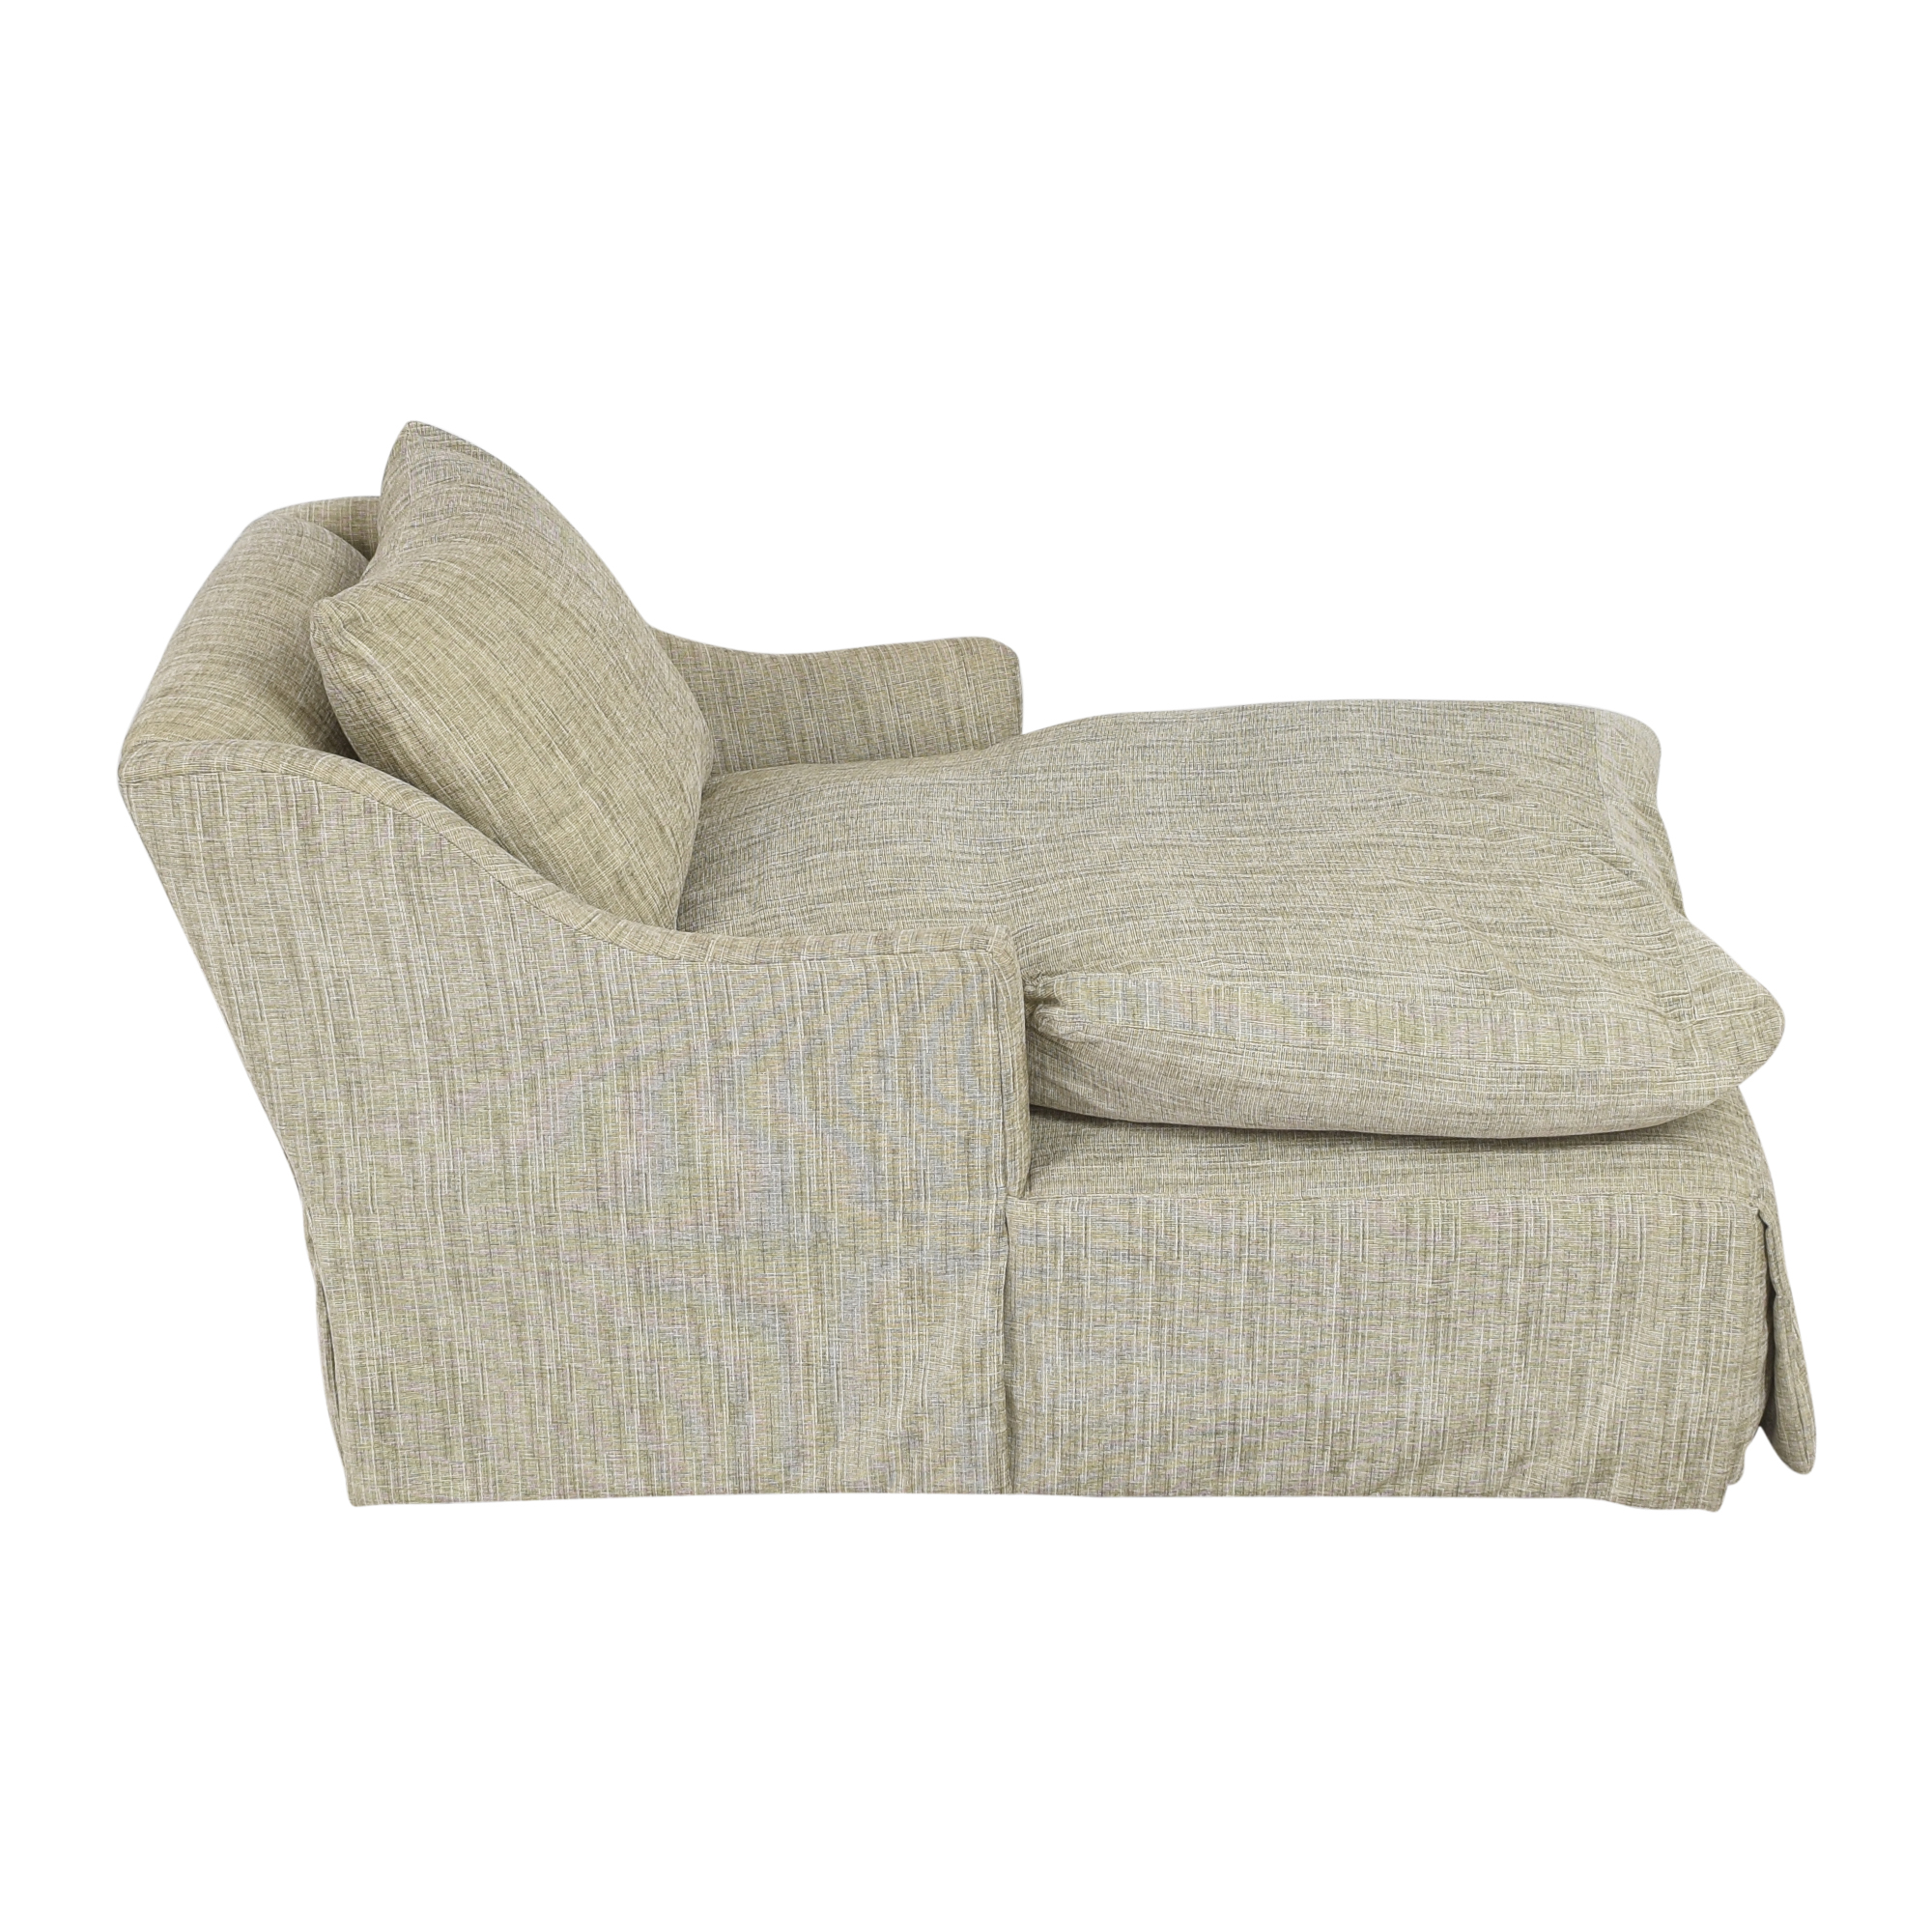 Country Willow Country Willow Evalani Slipcovered Chaise ma